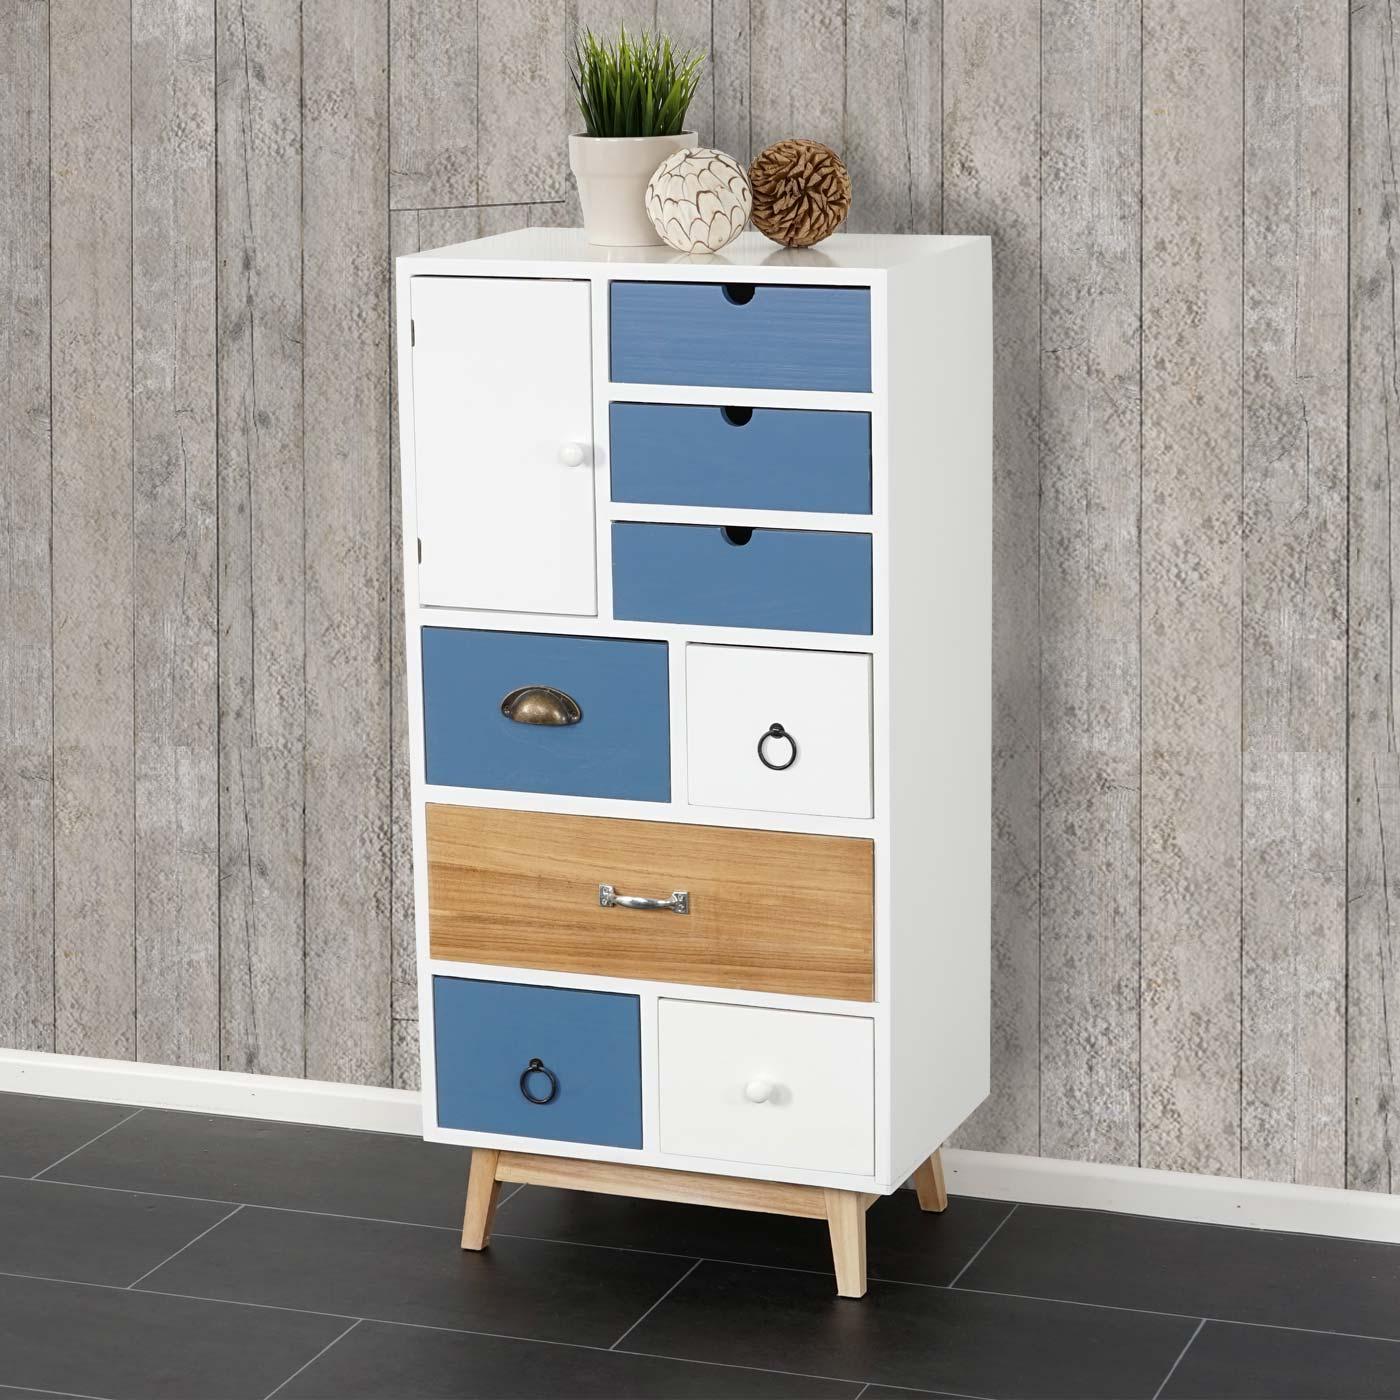 kommode malm t272 schubladenkommode schrank patchwork retro design 98x48x32cm ebay. Black Bedroom Furniture Sets. Home Design Ideas